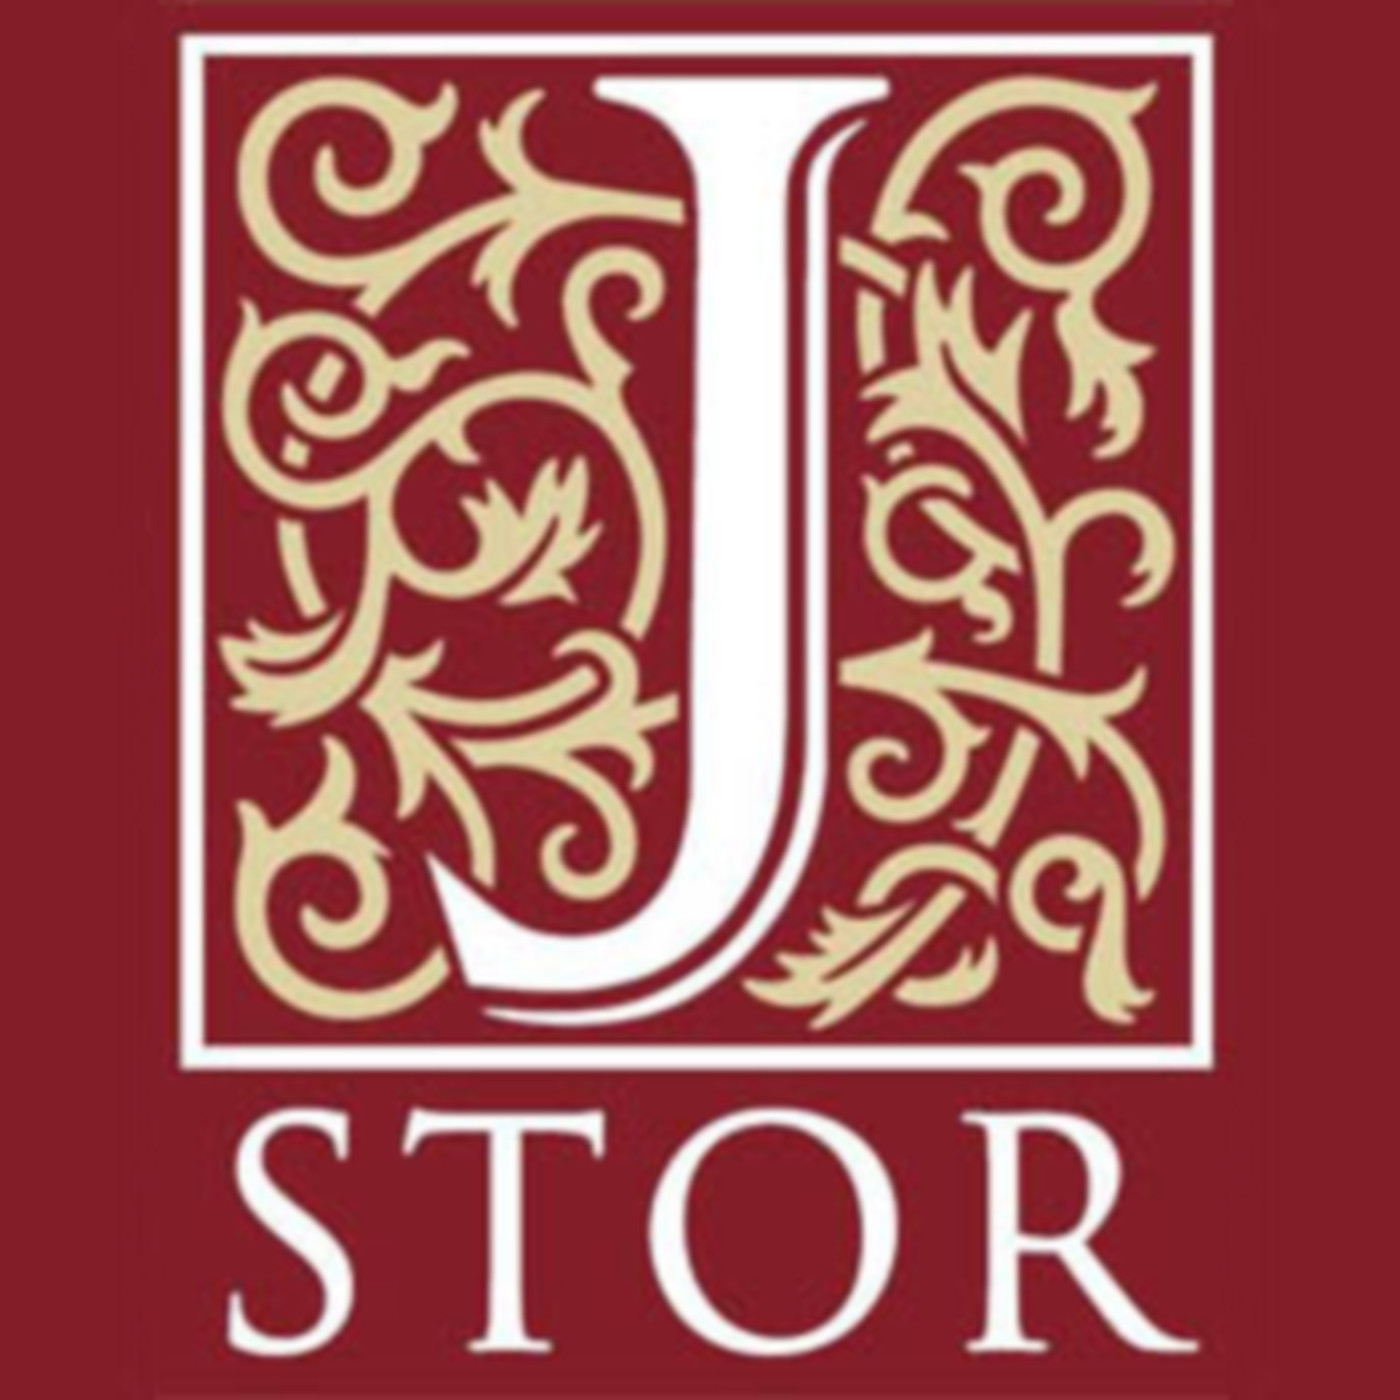 jstor logo and link